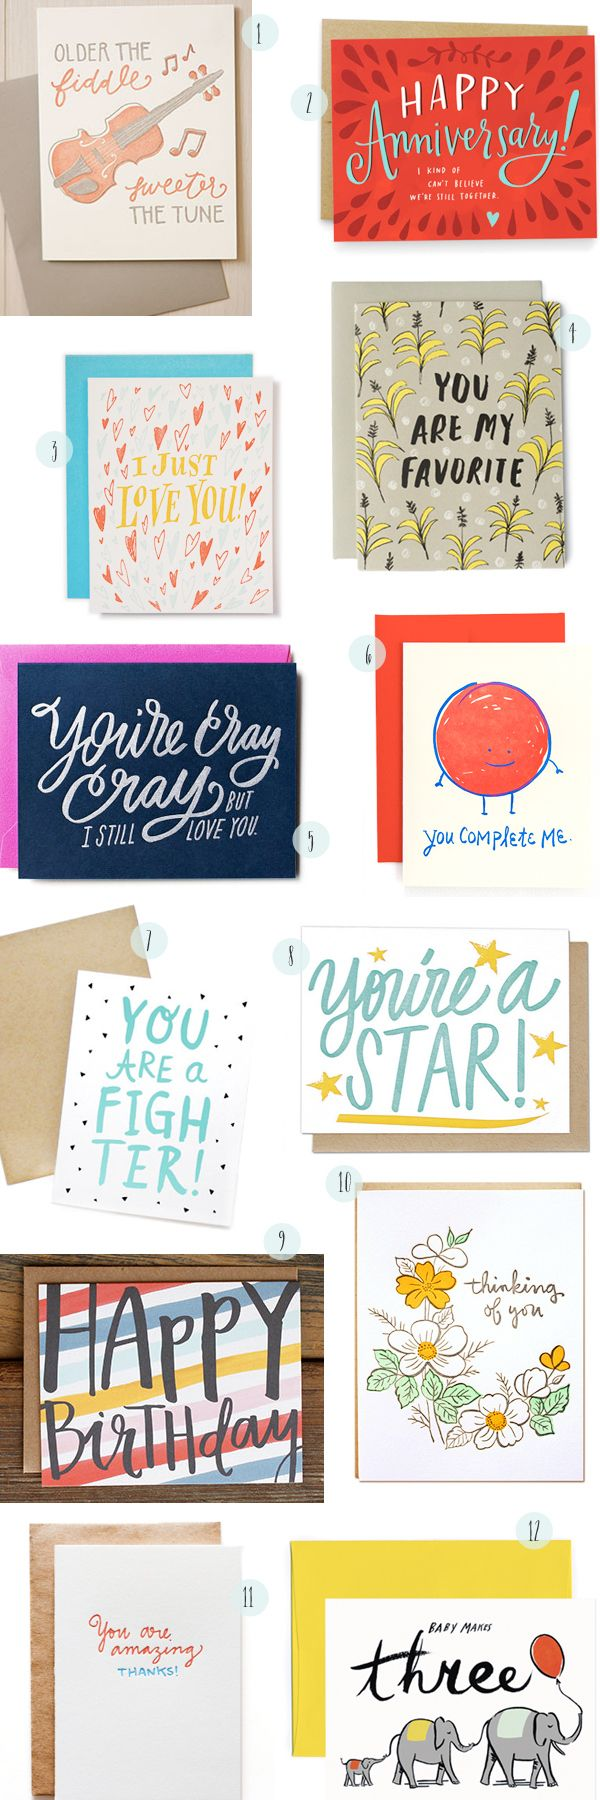 Hand Lettered Greeting Cards Round Up by Oh So Beautiful Paper: ohsobeautifulpape... | 1. Belle  Union; 2. Emily McDowell; 3. Ladyfingers Letterpress; 4. Sycamore Street Press; 5. Moglea; 6. Hello!Lucky; 7. The Paper Cub Co.; 8. Thimblepress; 9. One Canoe Two; 10. Parrott Design Studio; 11. Iron Curtain Press; 12. Idlewild Co. | Click through for full links and resources!